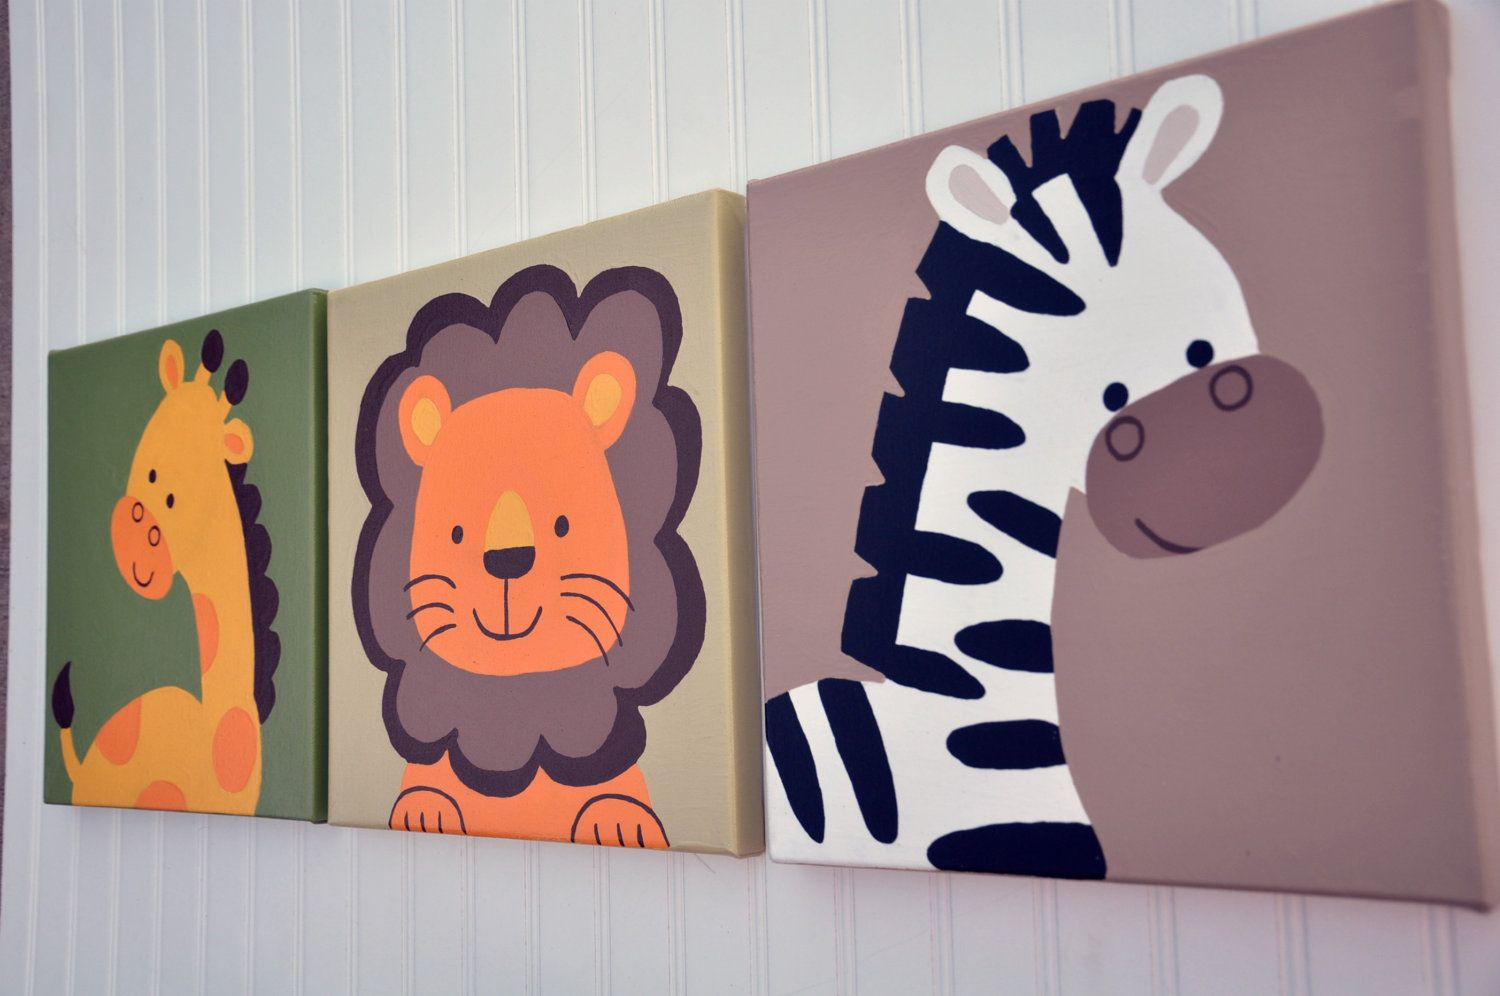 3 Piece Original Painting Canvas Animal Nursery Set- Lions, Giraffes, and Zebras OH MY. $75.00, via Etsy.